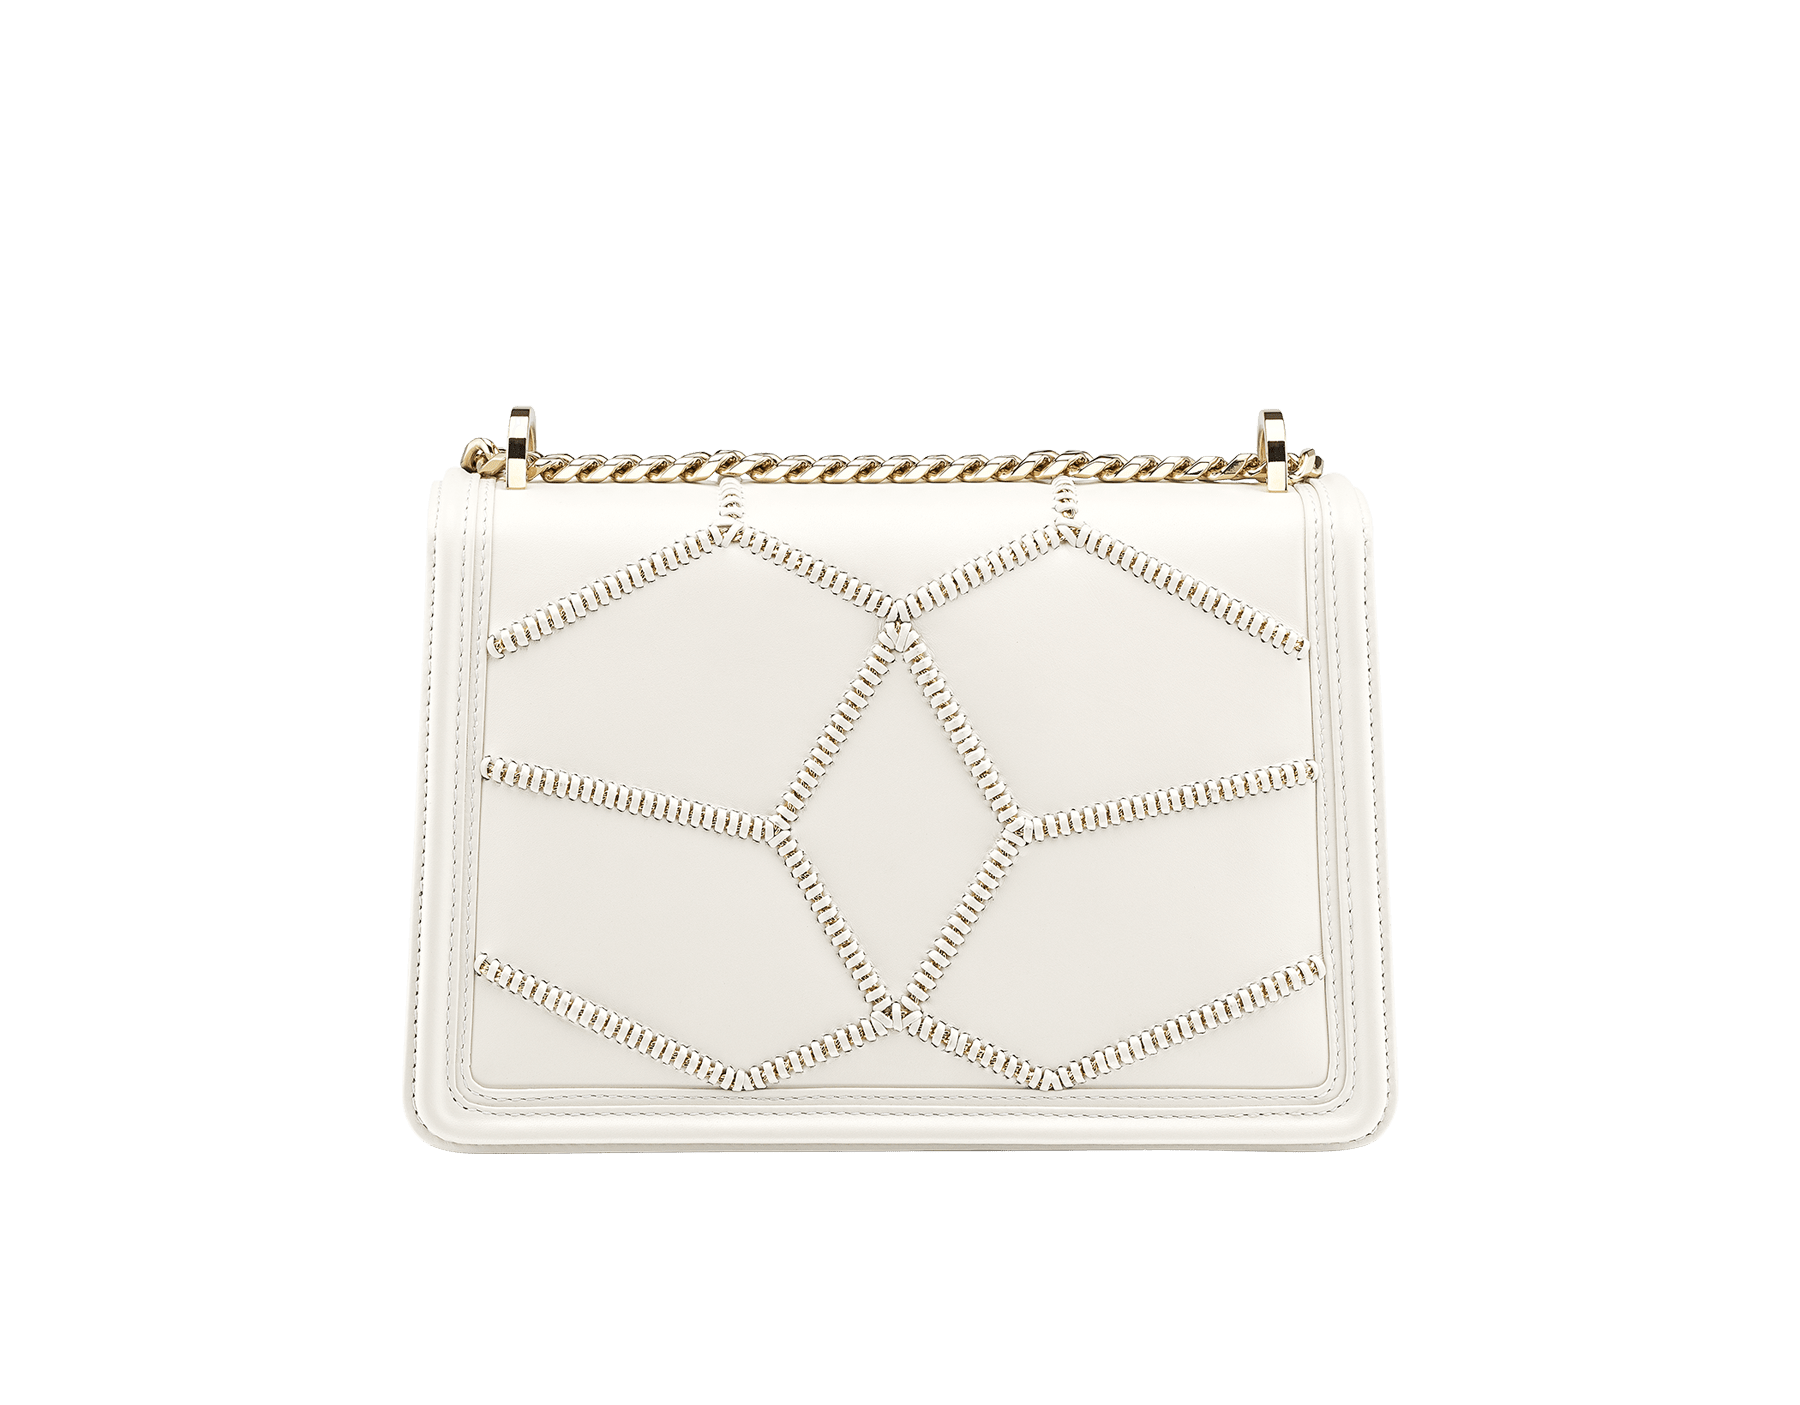 Serpenti Diamond Blast shoulder bag in white agate smooth calf leather with geometric chain motif in light gold finishing.Snakehead closure in light gold plated brass decorated with black and white enamel, and black onyx eyes. 922-NGC image 3